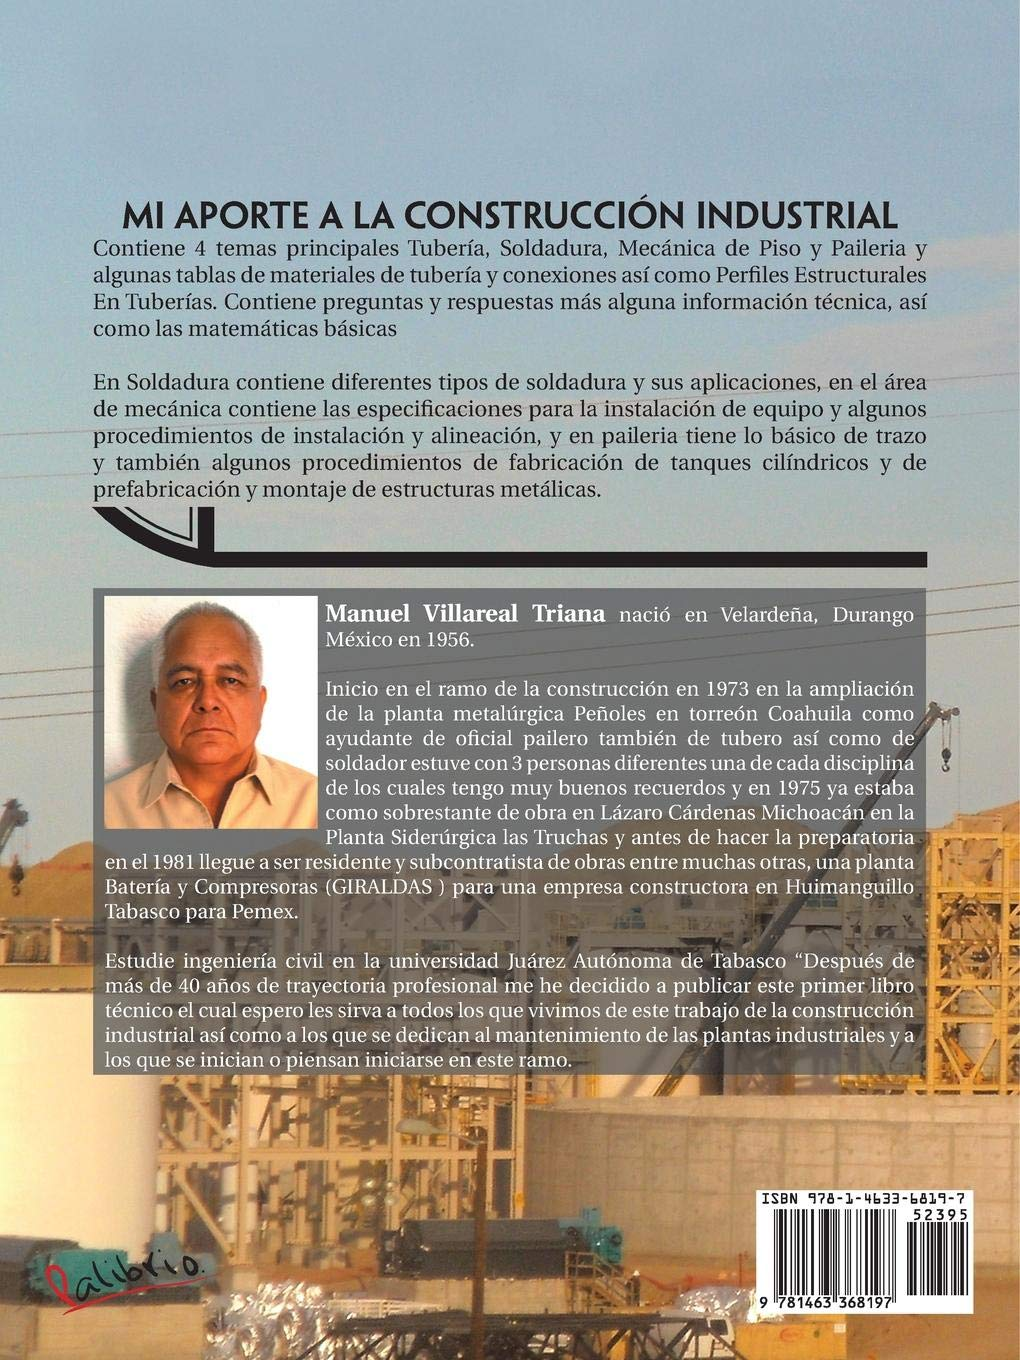 Mi aporte a la construcción industrial (Spanish Edition): Manuel Villarreal Triana: 9781463368197: Amazon.com: Books